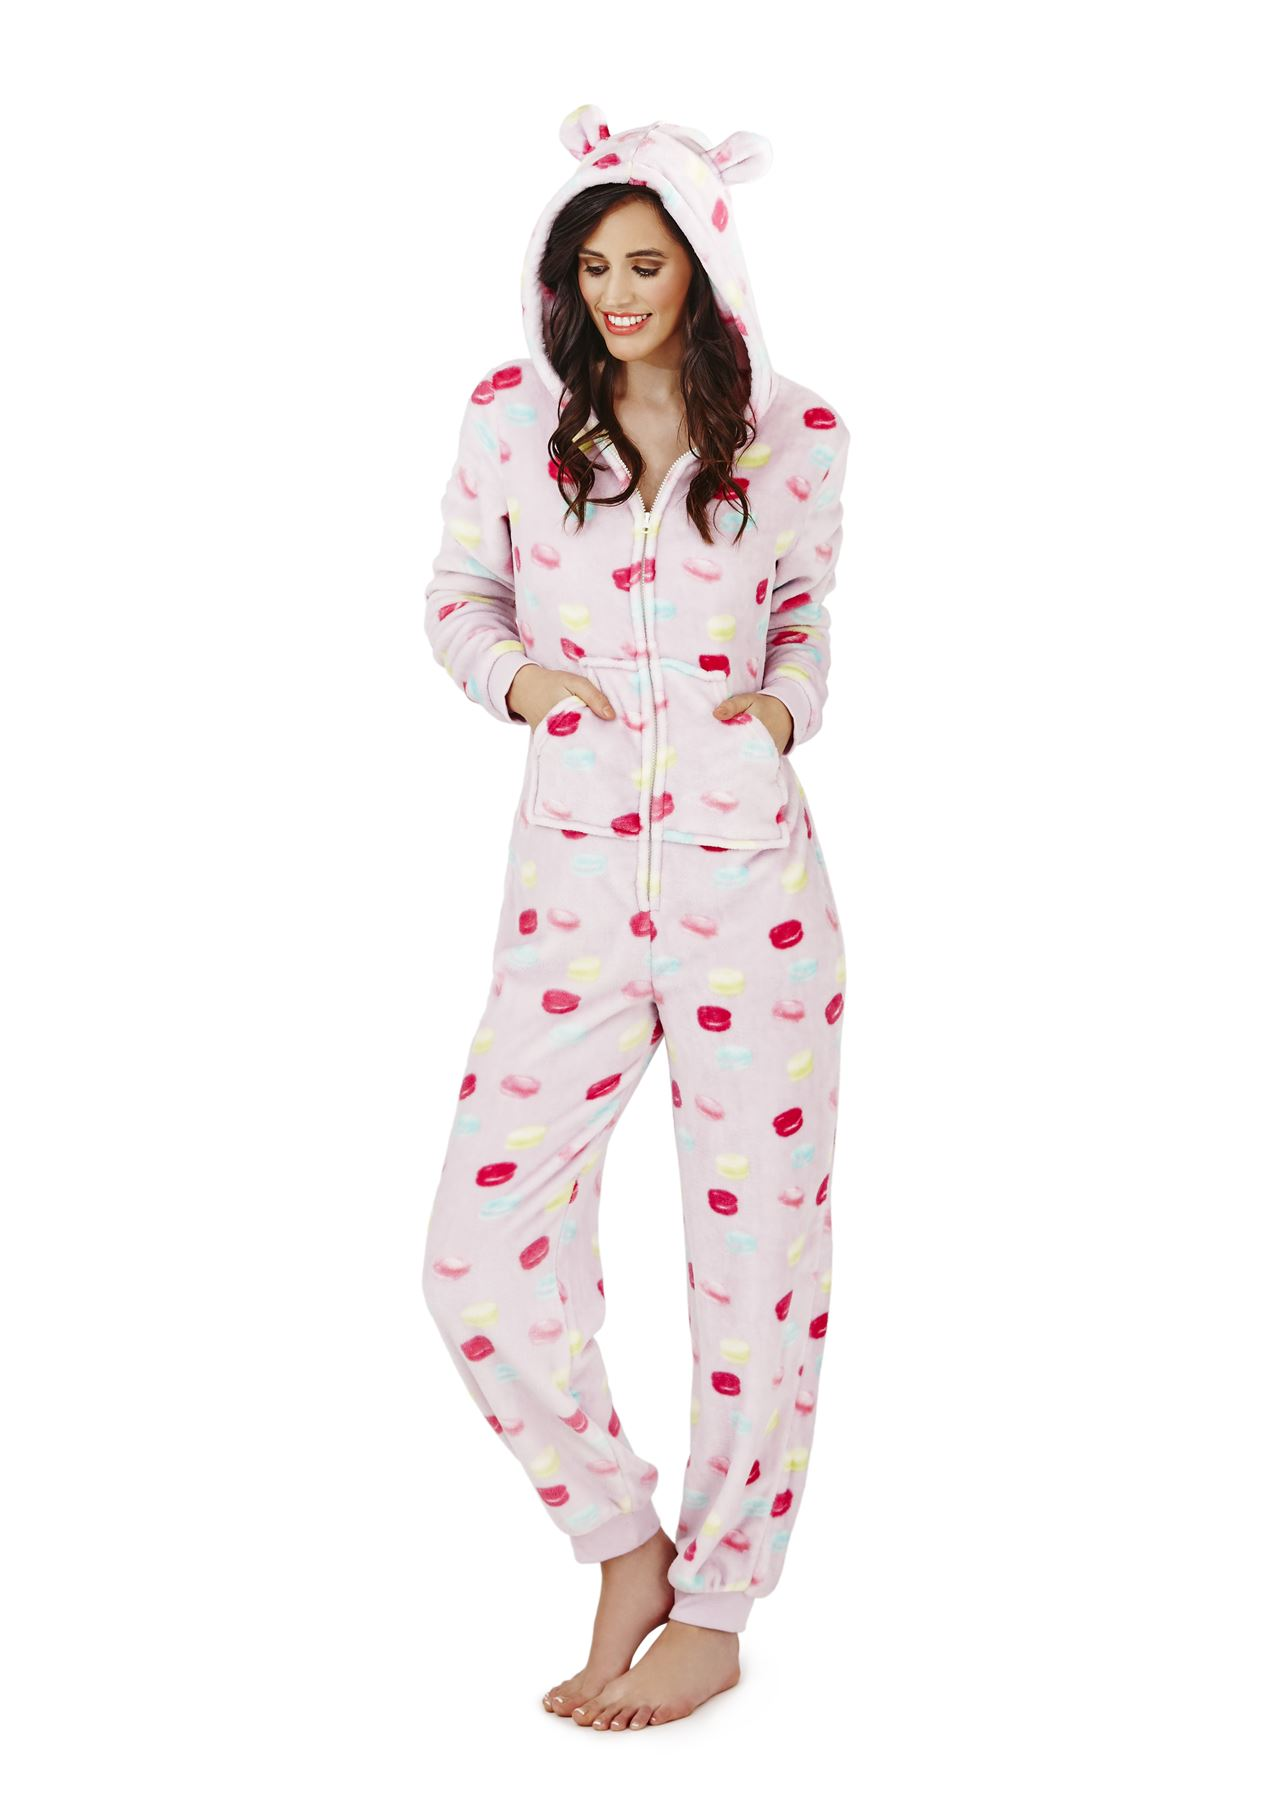 Our adult onesie pajamas are cheeky with good humor prints and great colors. These funny, one-piece pajamas for adults are complete with funny phrases and a .